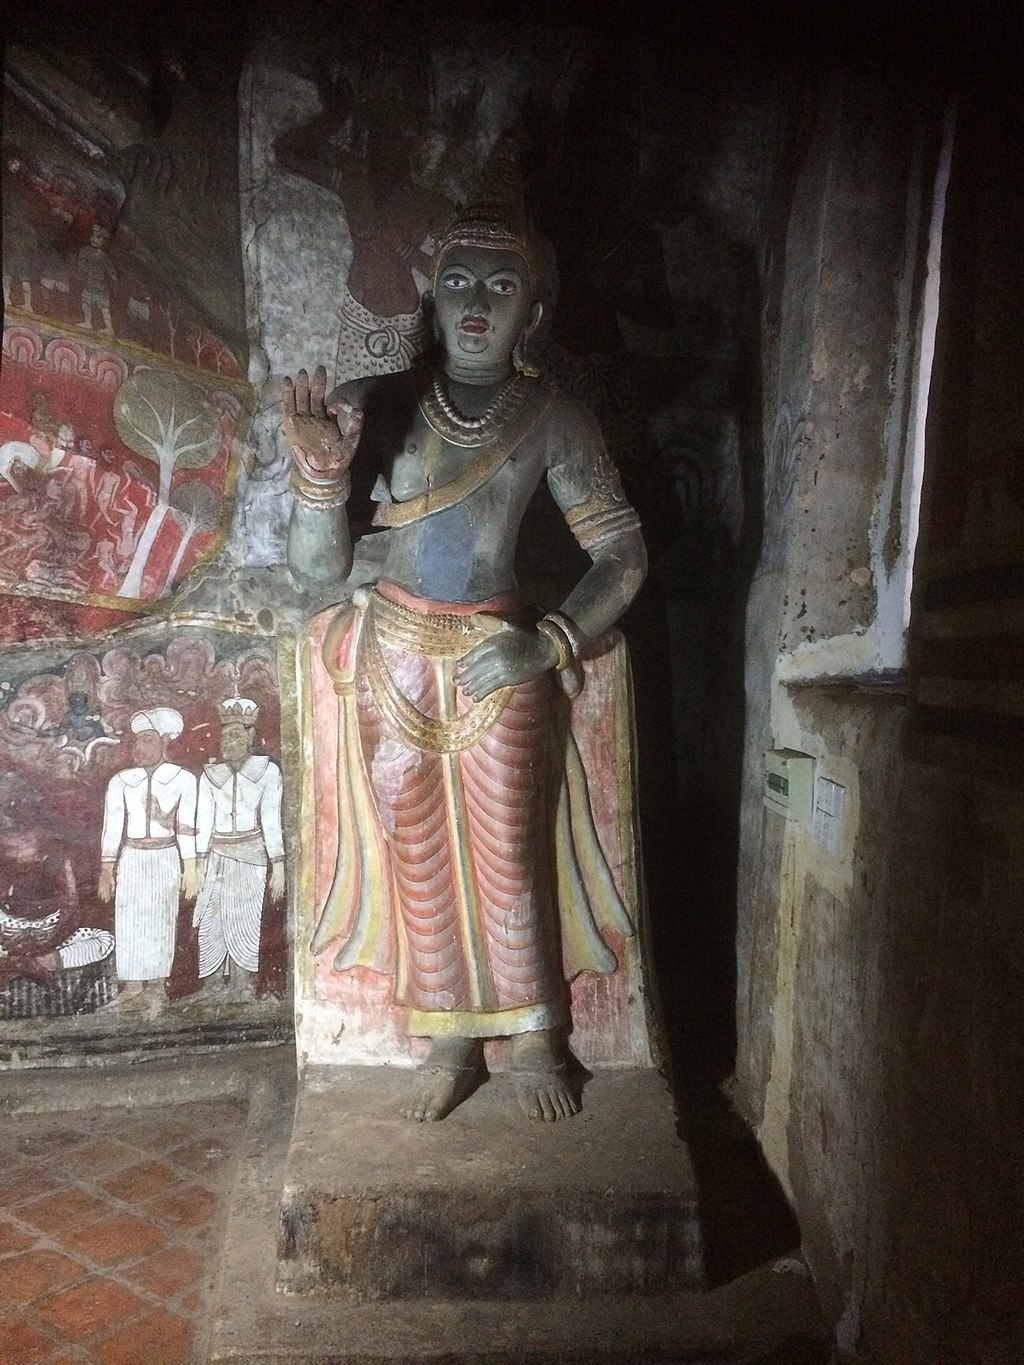 Statue of King Nissanka Malla of Sri Lanka located in Dambulla cave temple, Sri Lanka